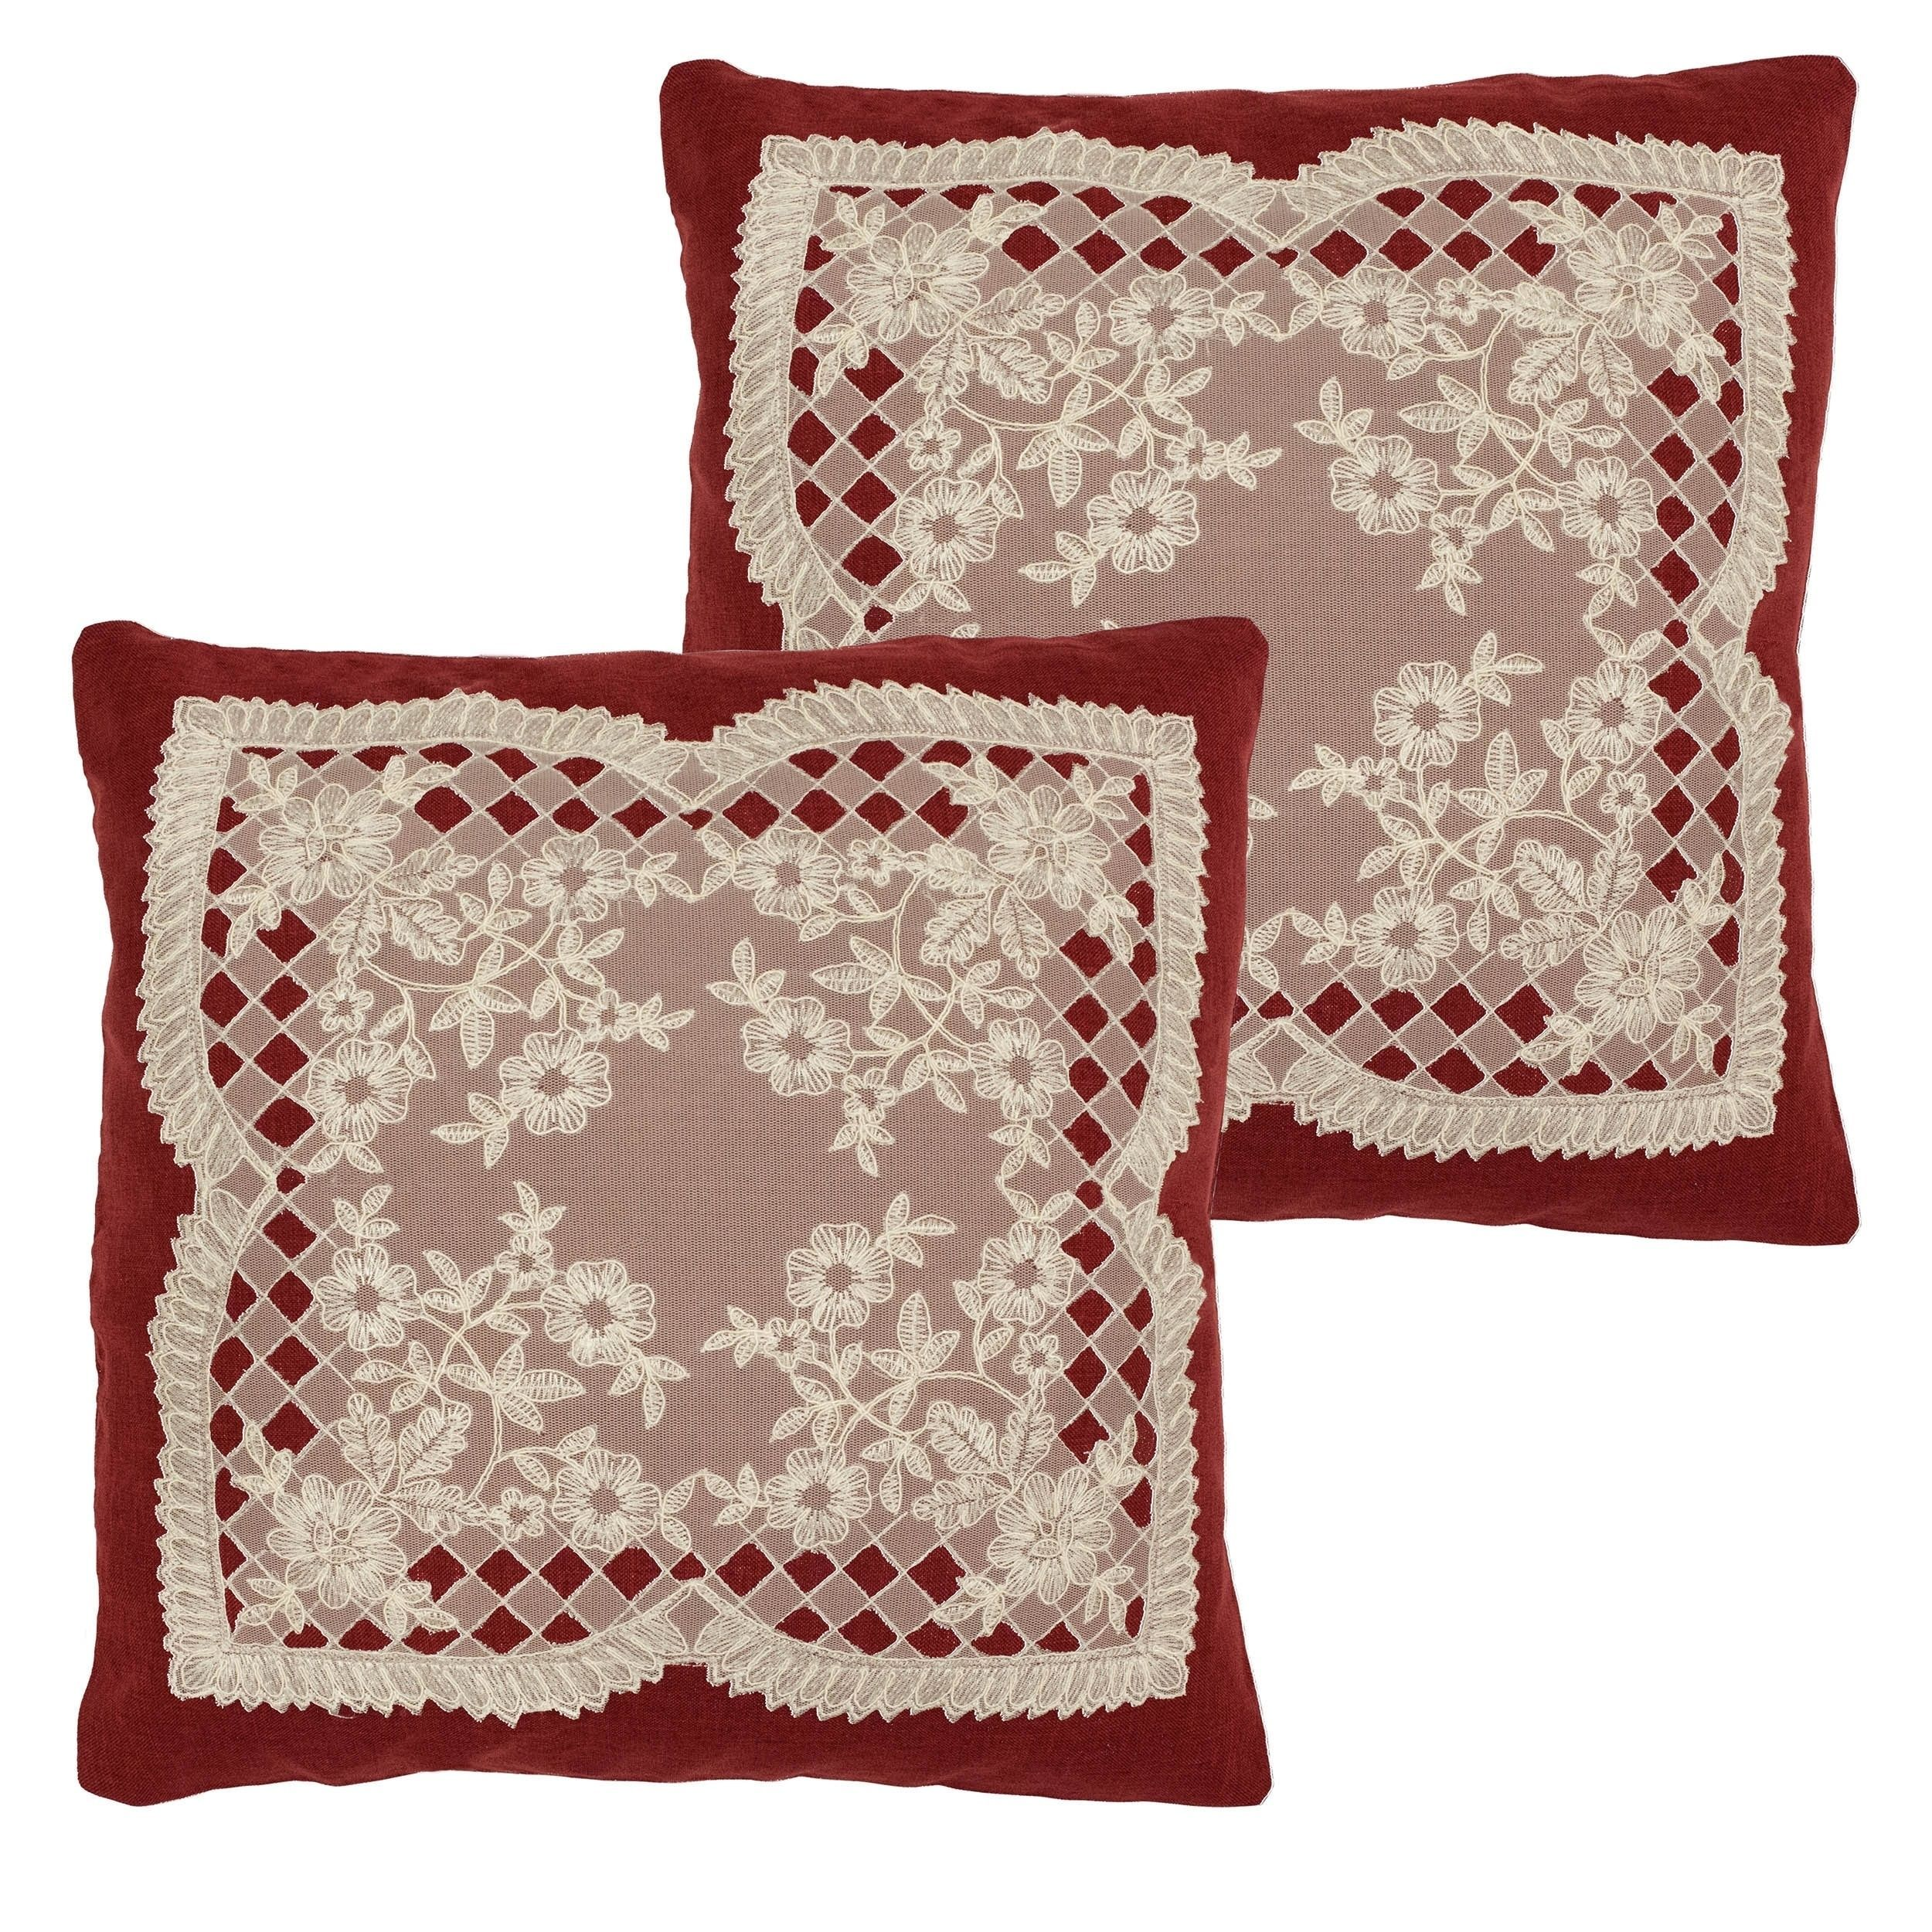 Creative home ideas caisey lace and embroidery applique throw pillow